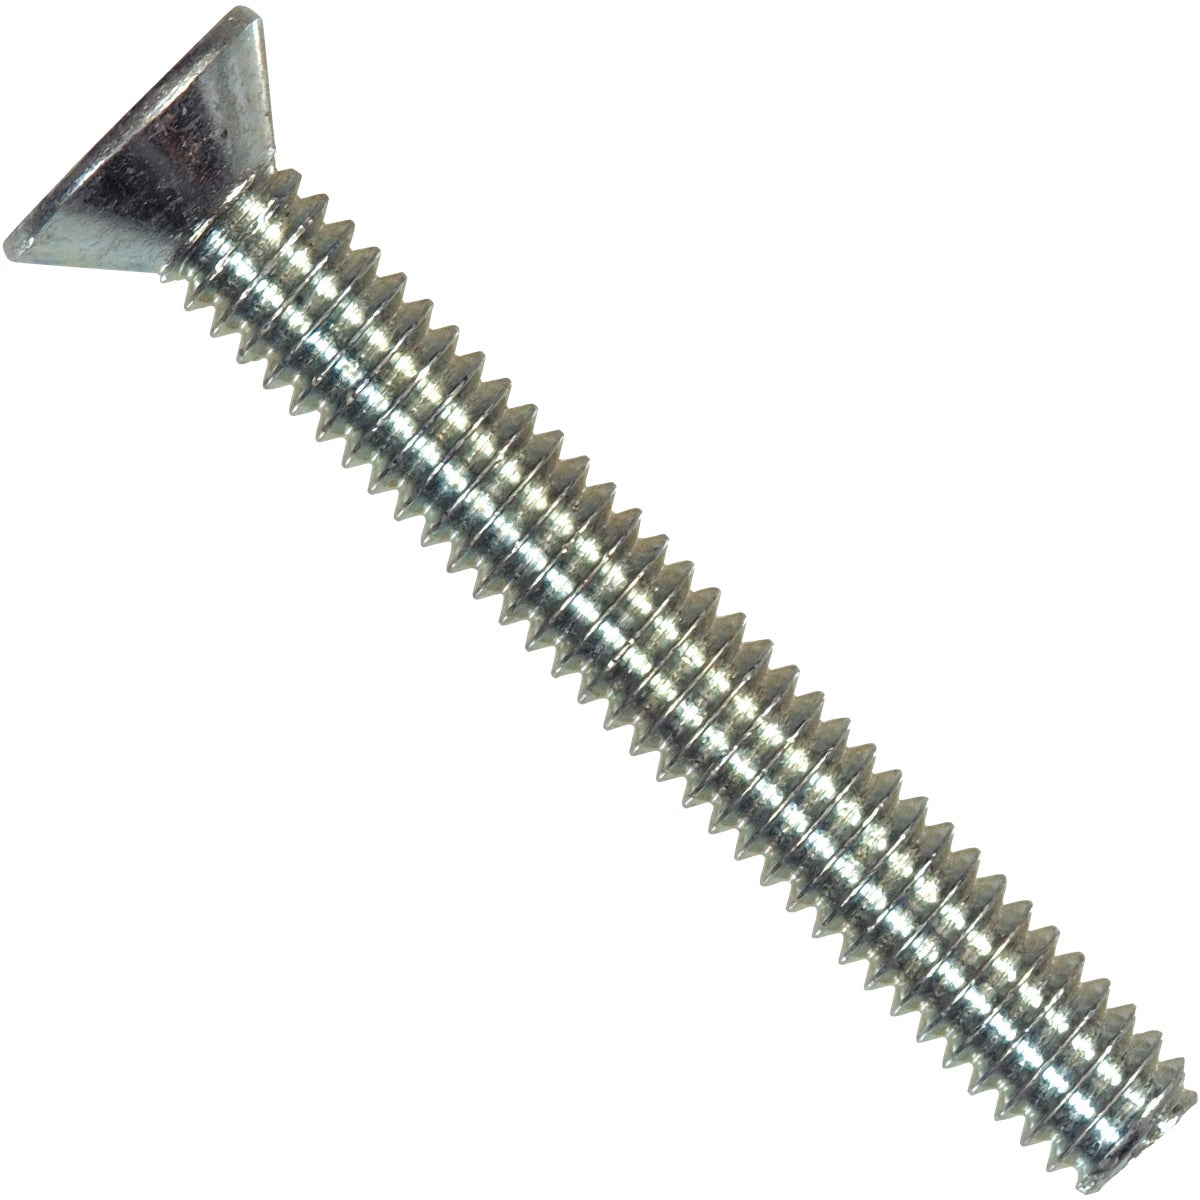 8-32X3/4 PH F MACH SCREW - 101056 by Hillman Fastener